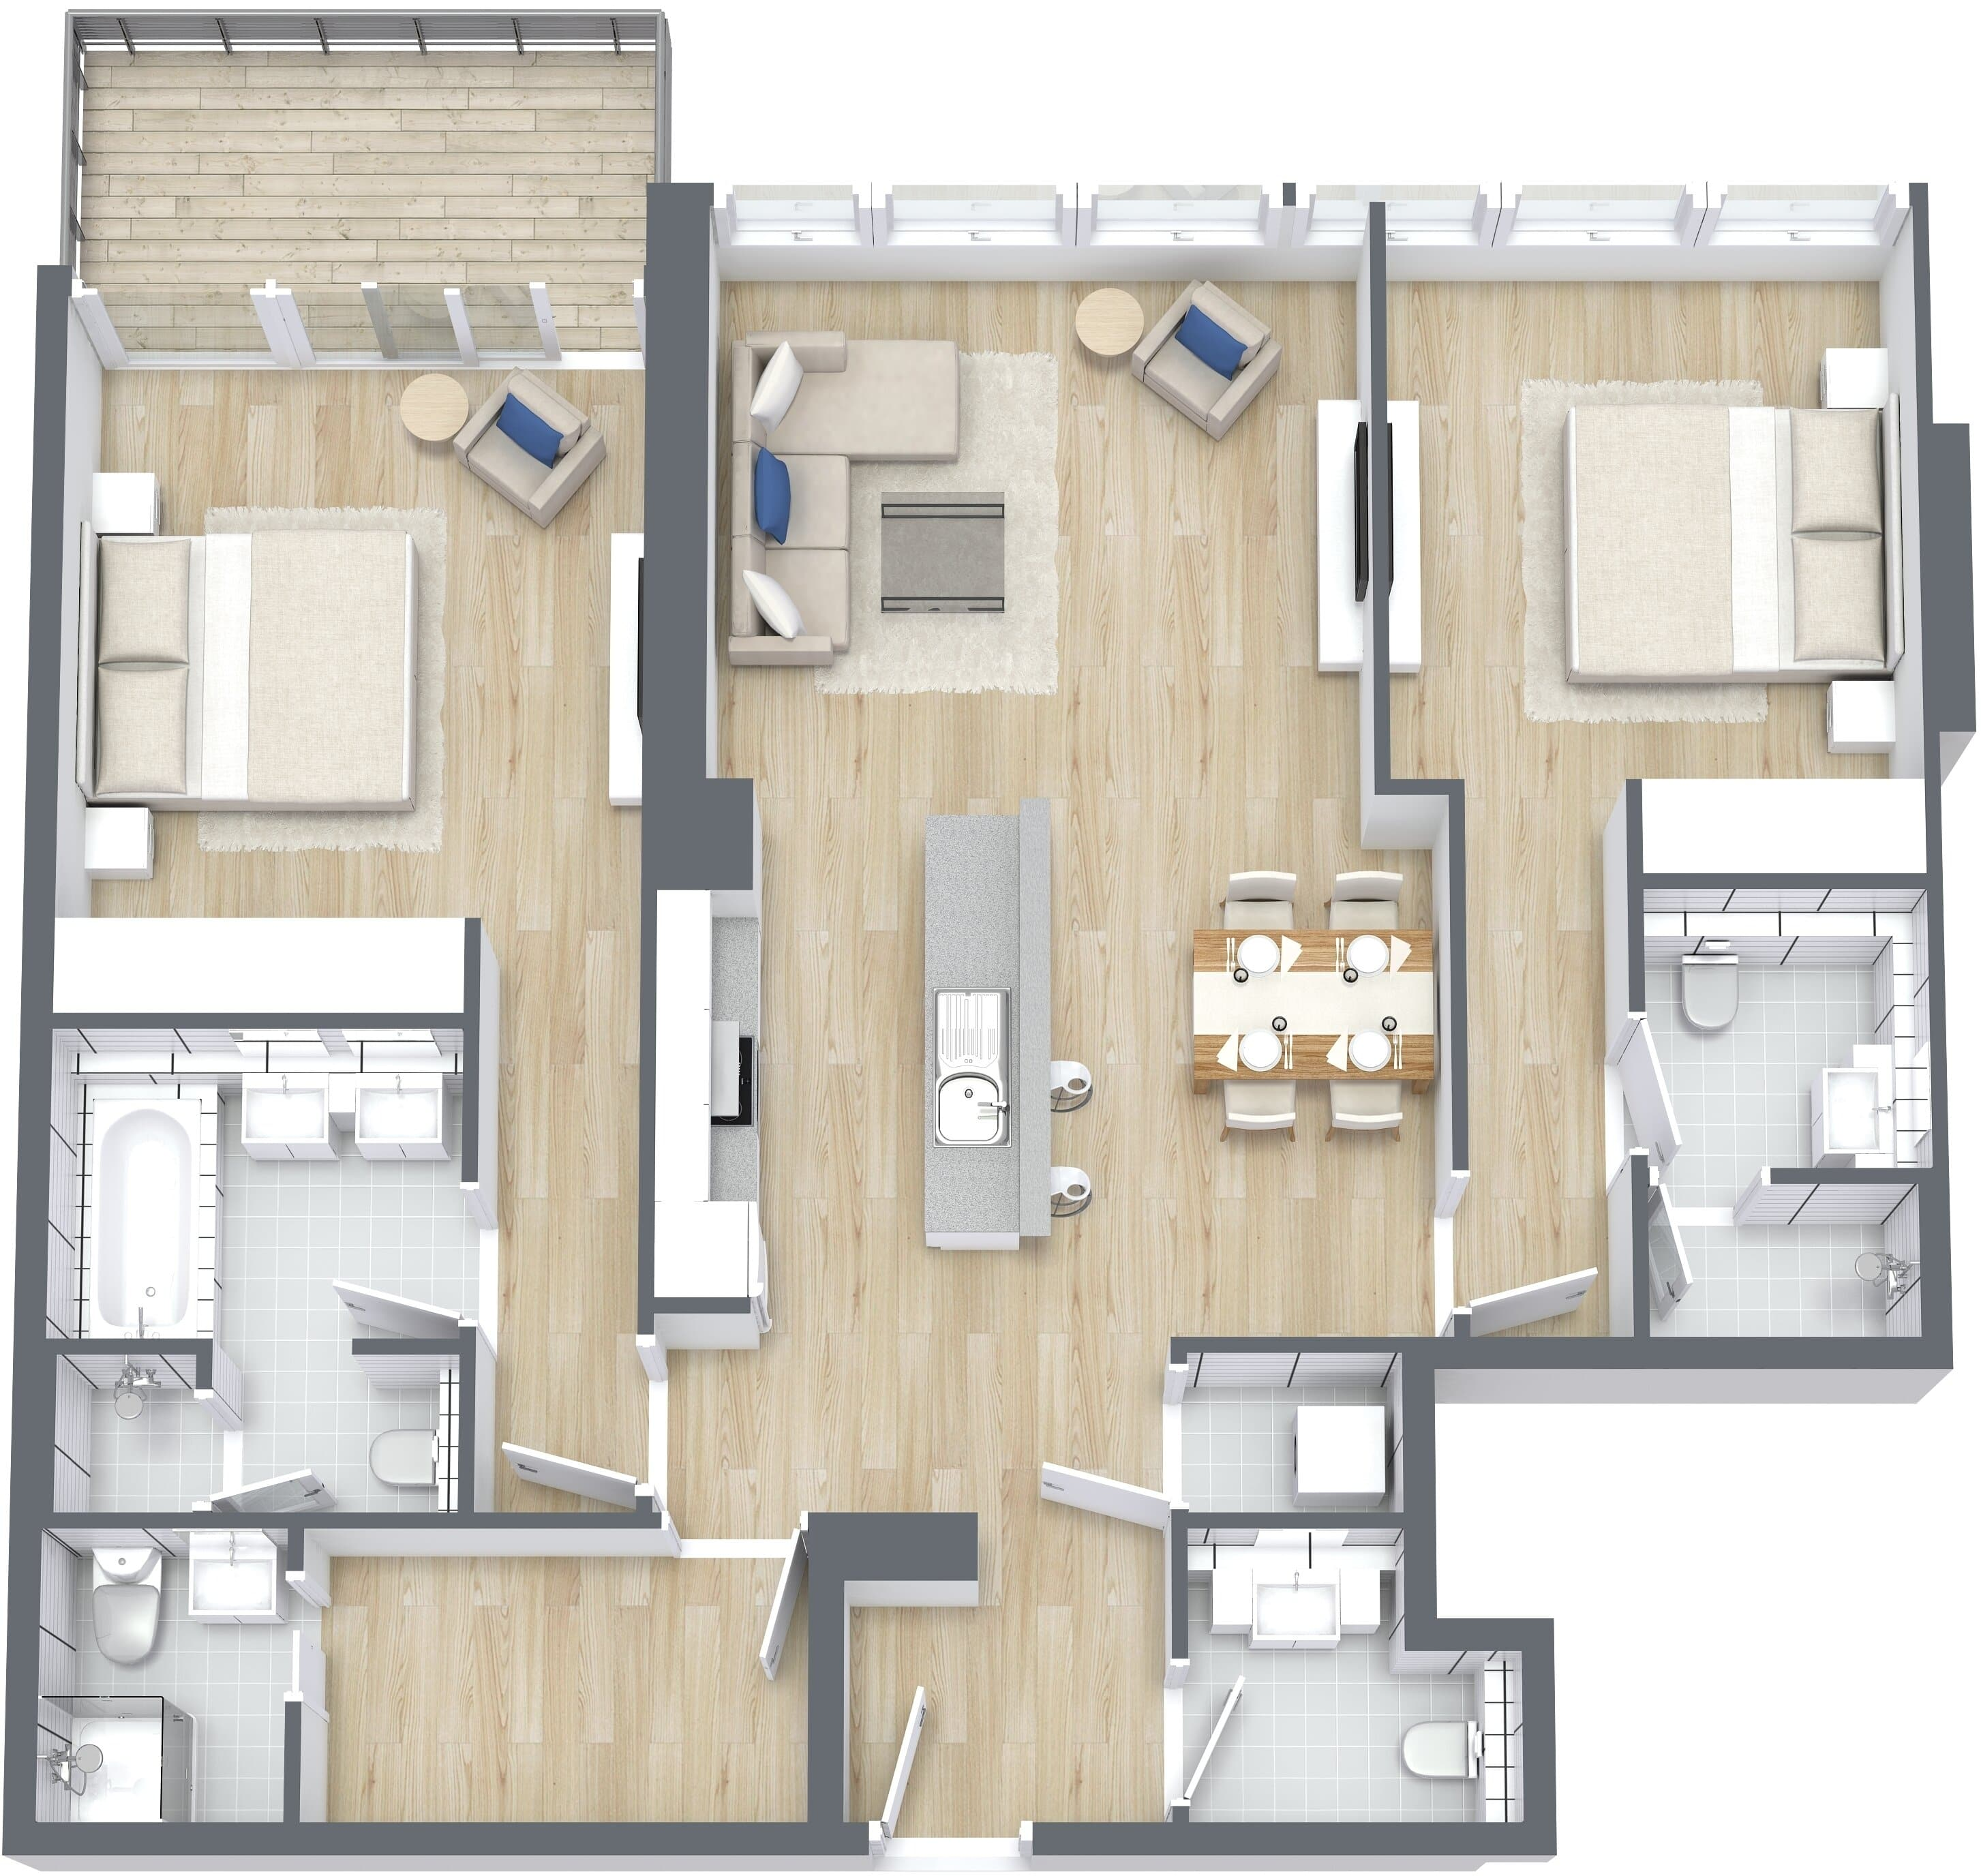 2 Bedroom Apartment Type B, Size 1329 sq ft